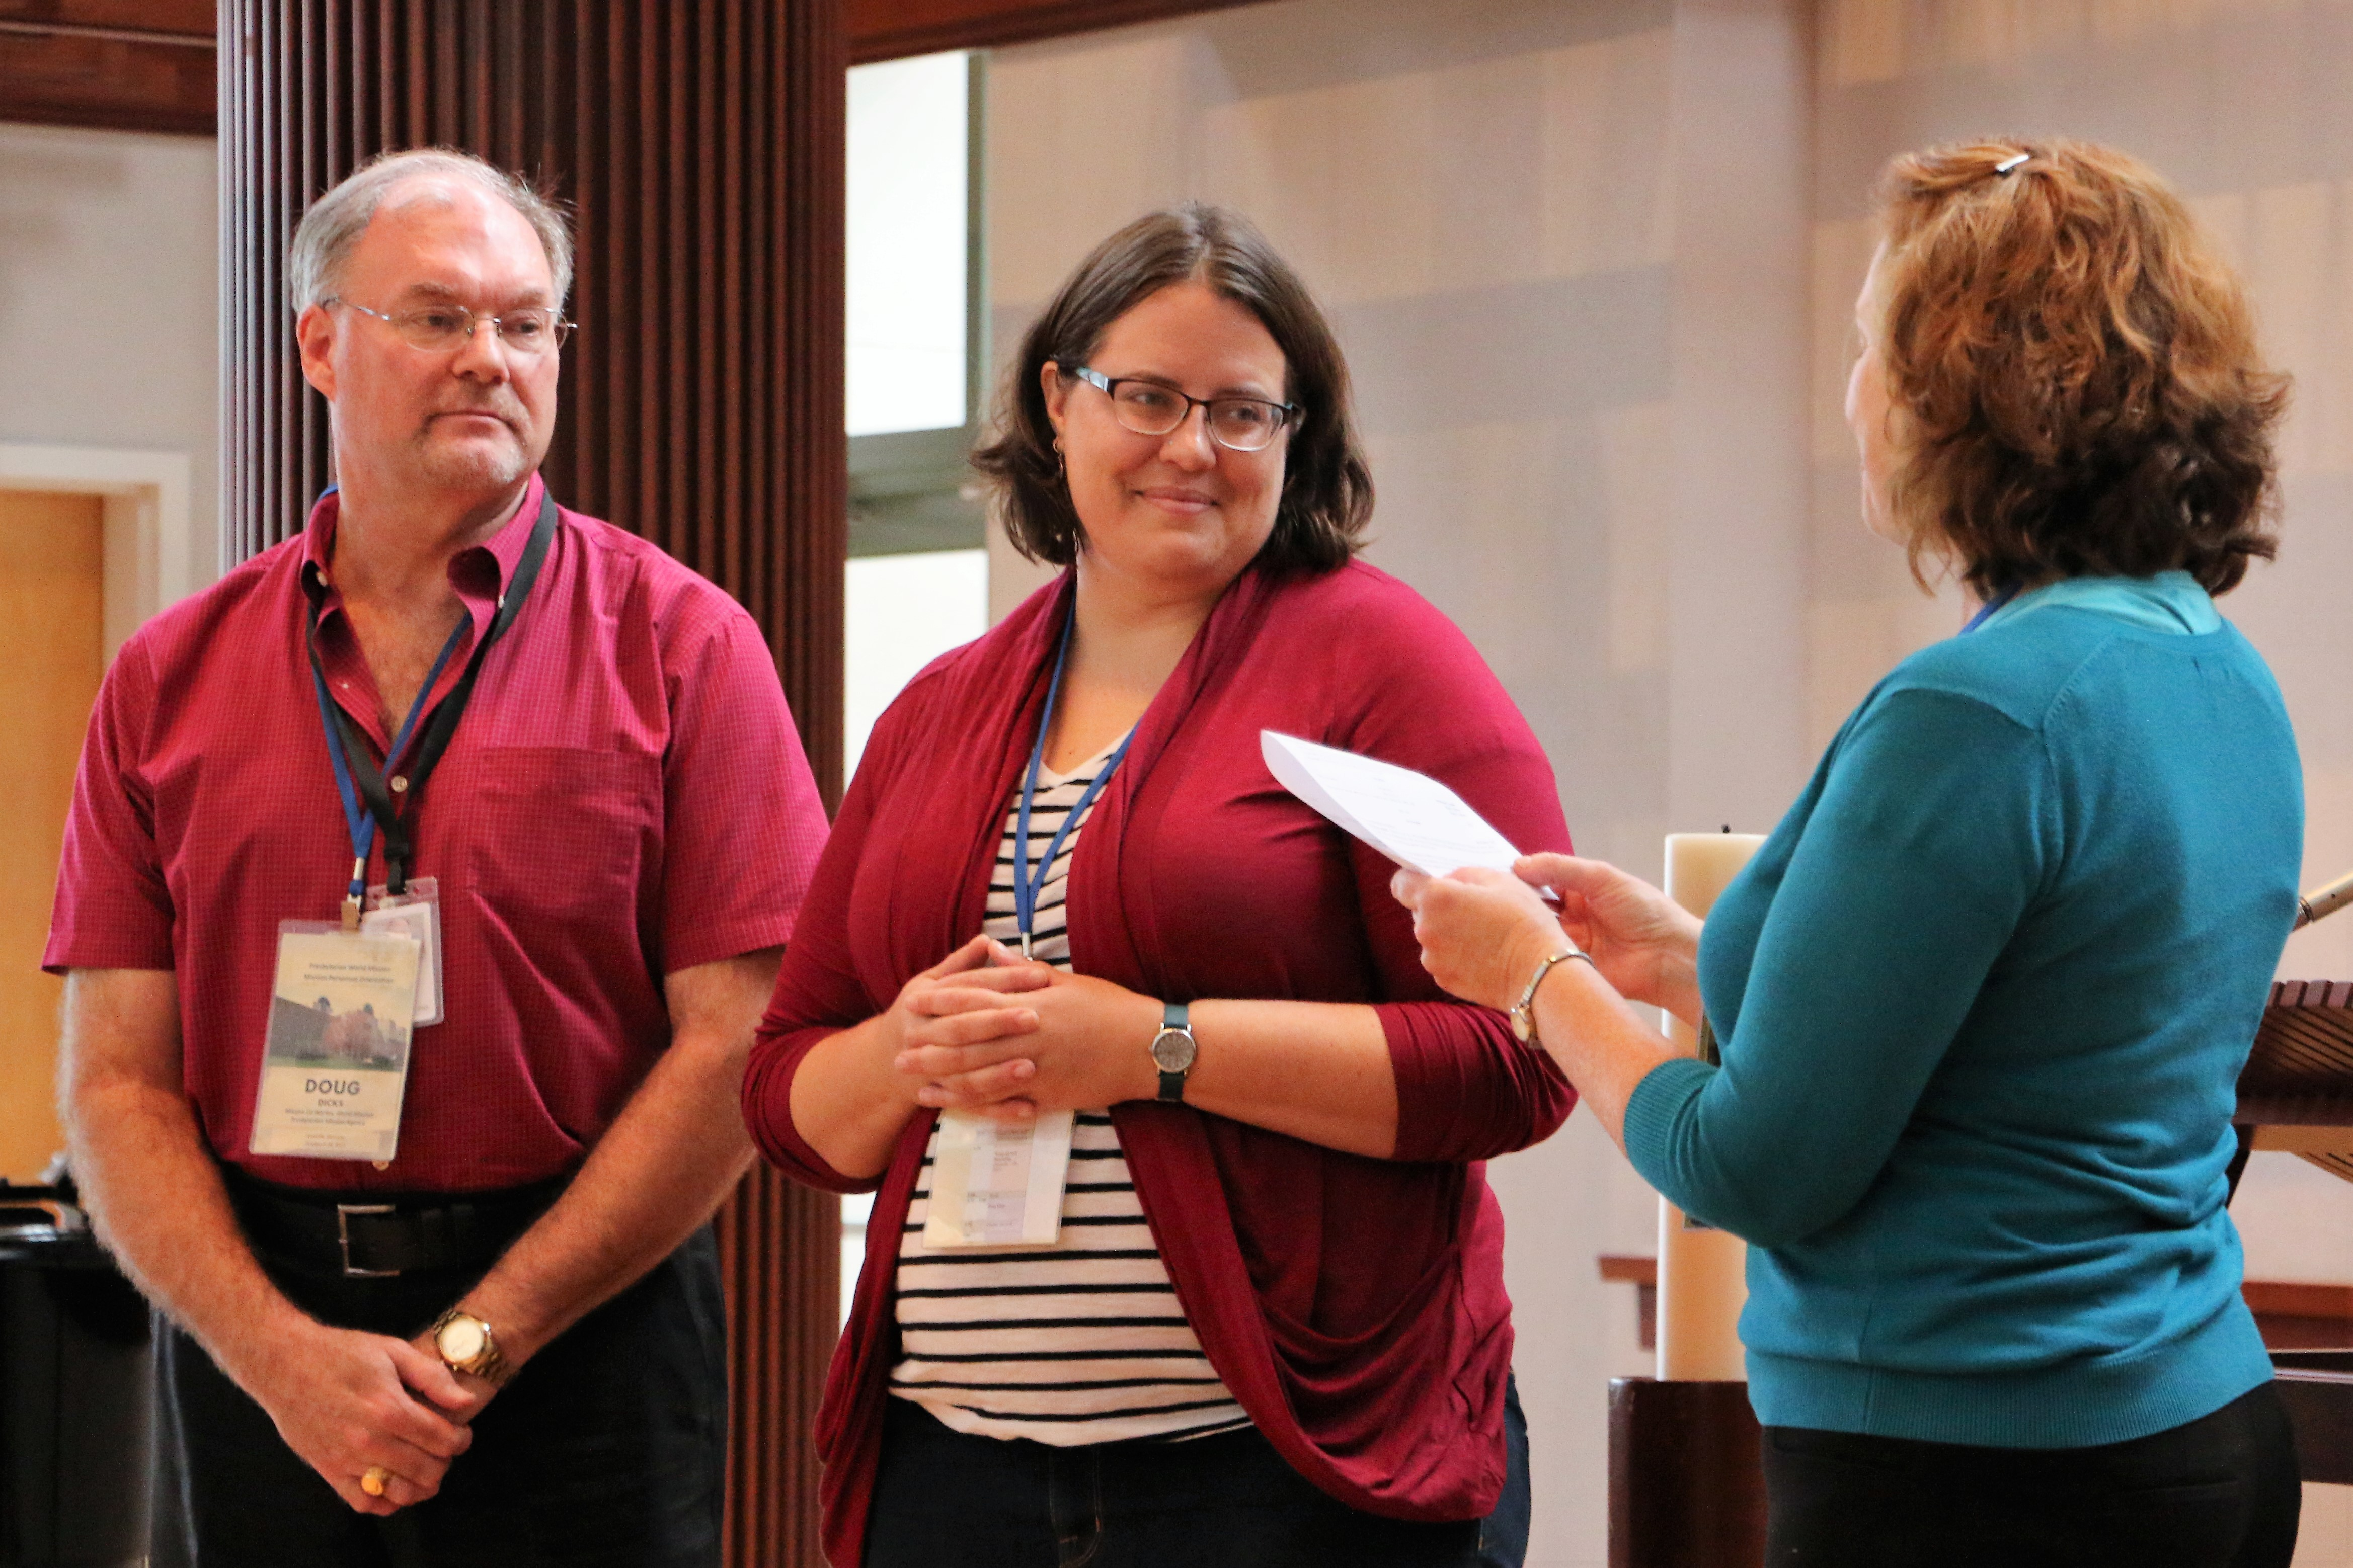 Dori Hjalmarson (center) and I during our Service of Blessing at the Presbyterian (USA) Center in Louisville, KY. With us is Michelle Lori (right), who coordinated our mission orientation.